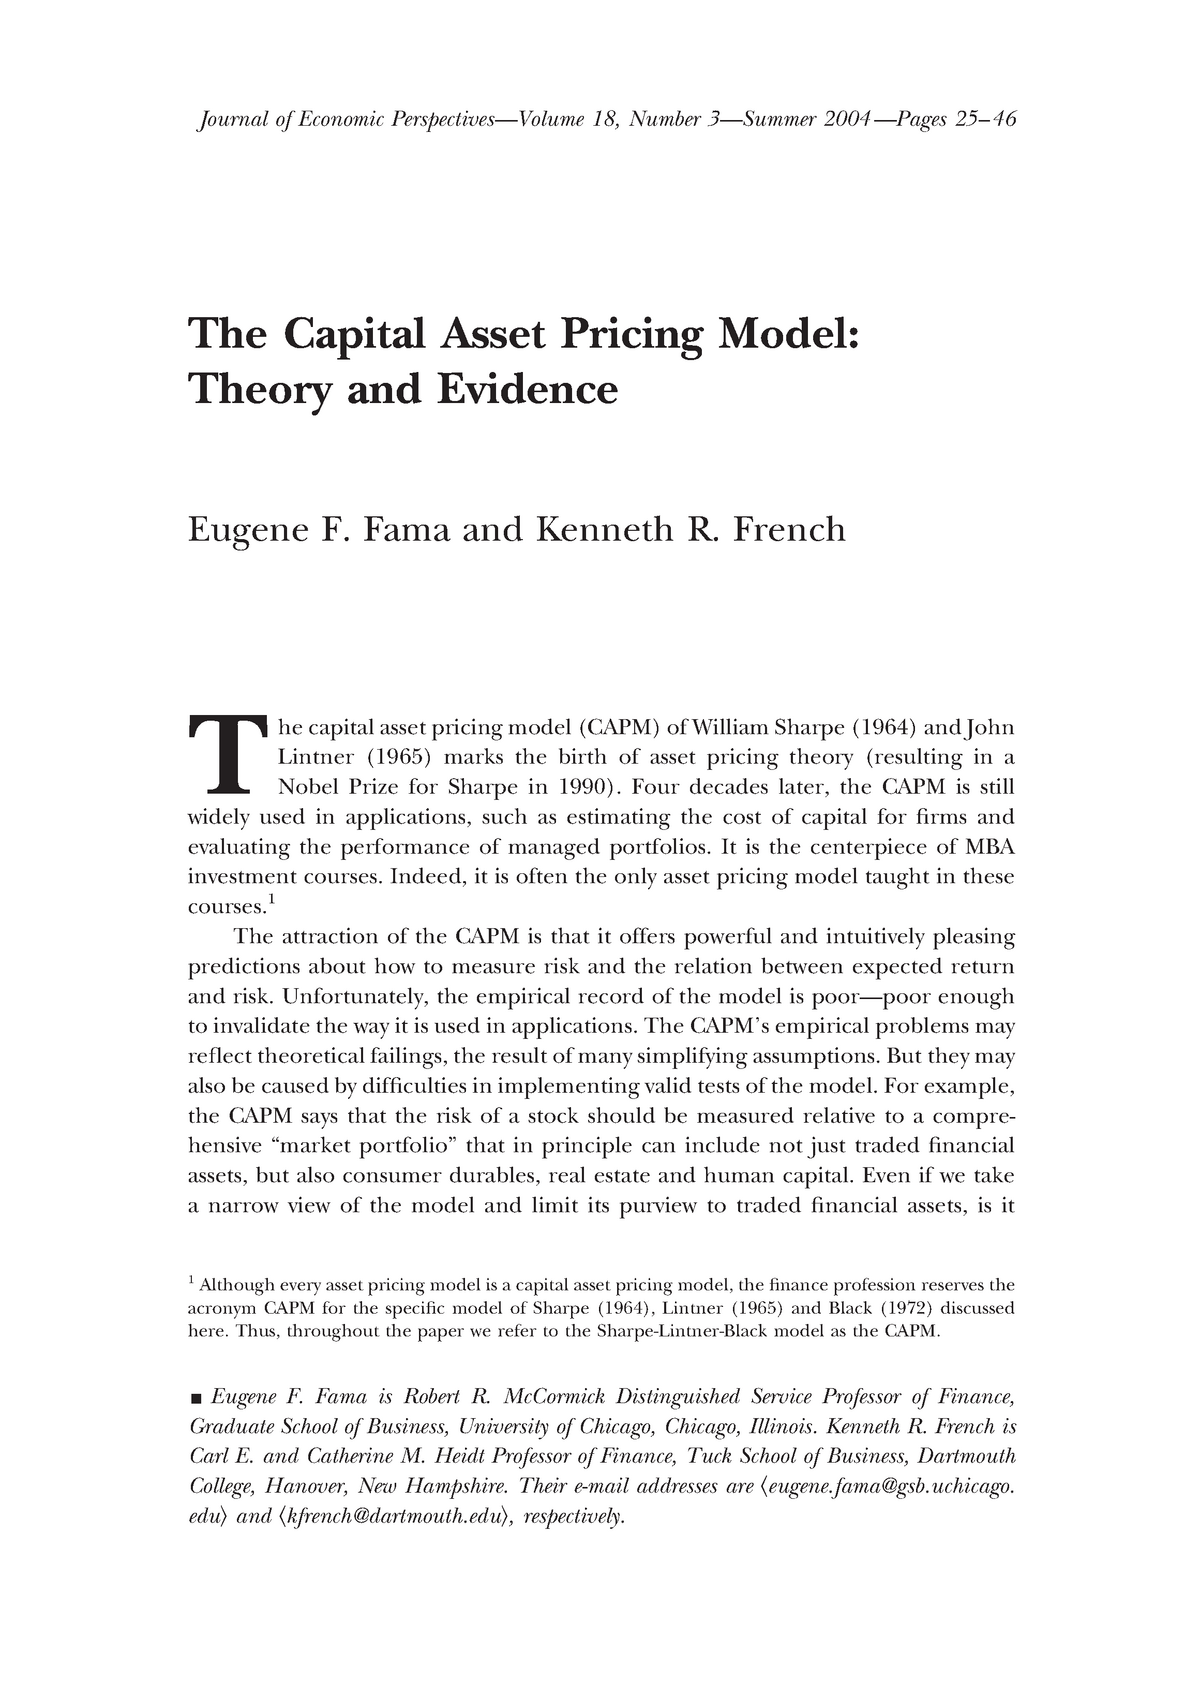 Article The Capital Asset Pricing Model: Theory and Evidence